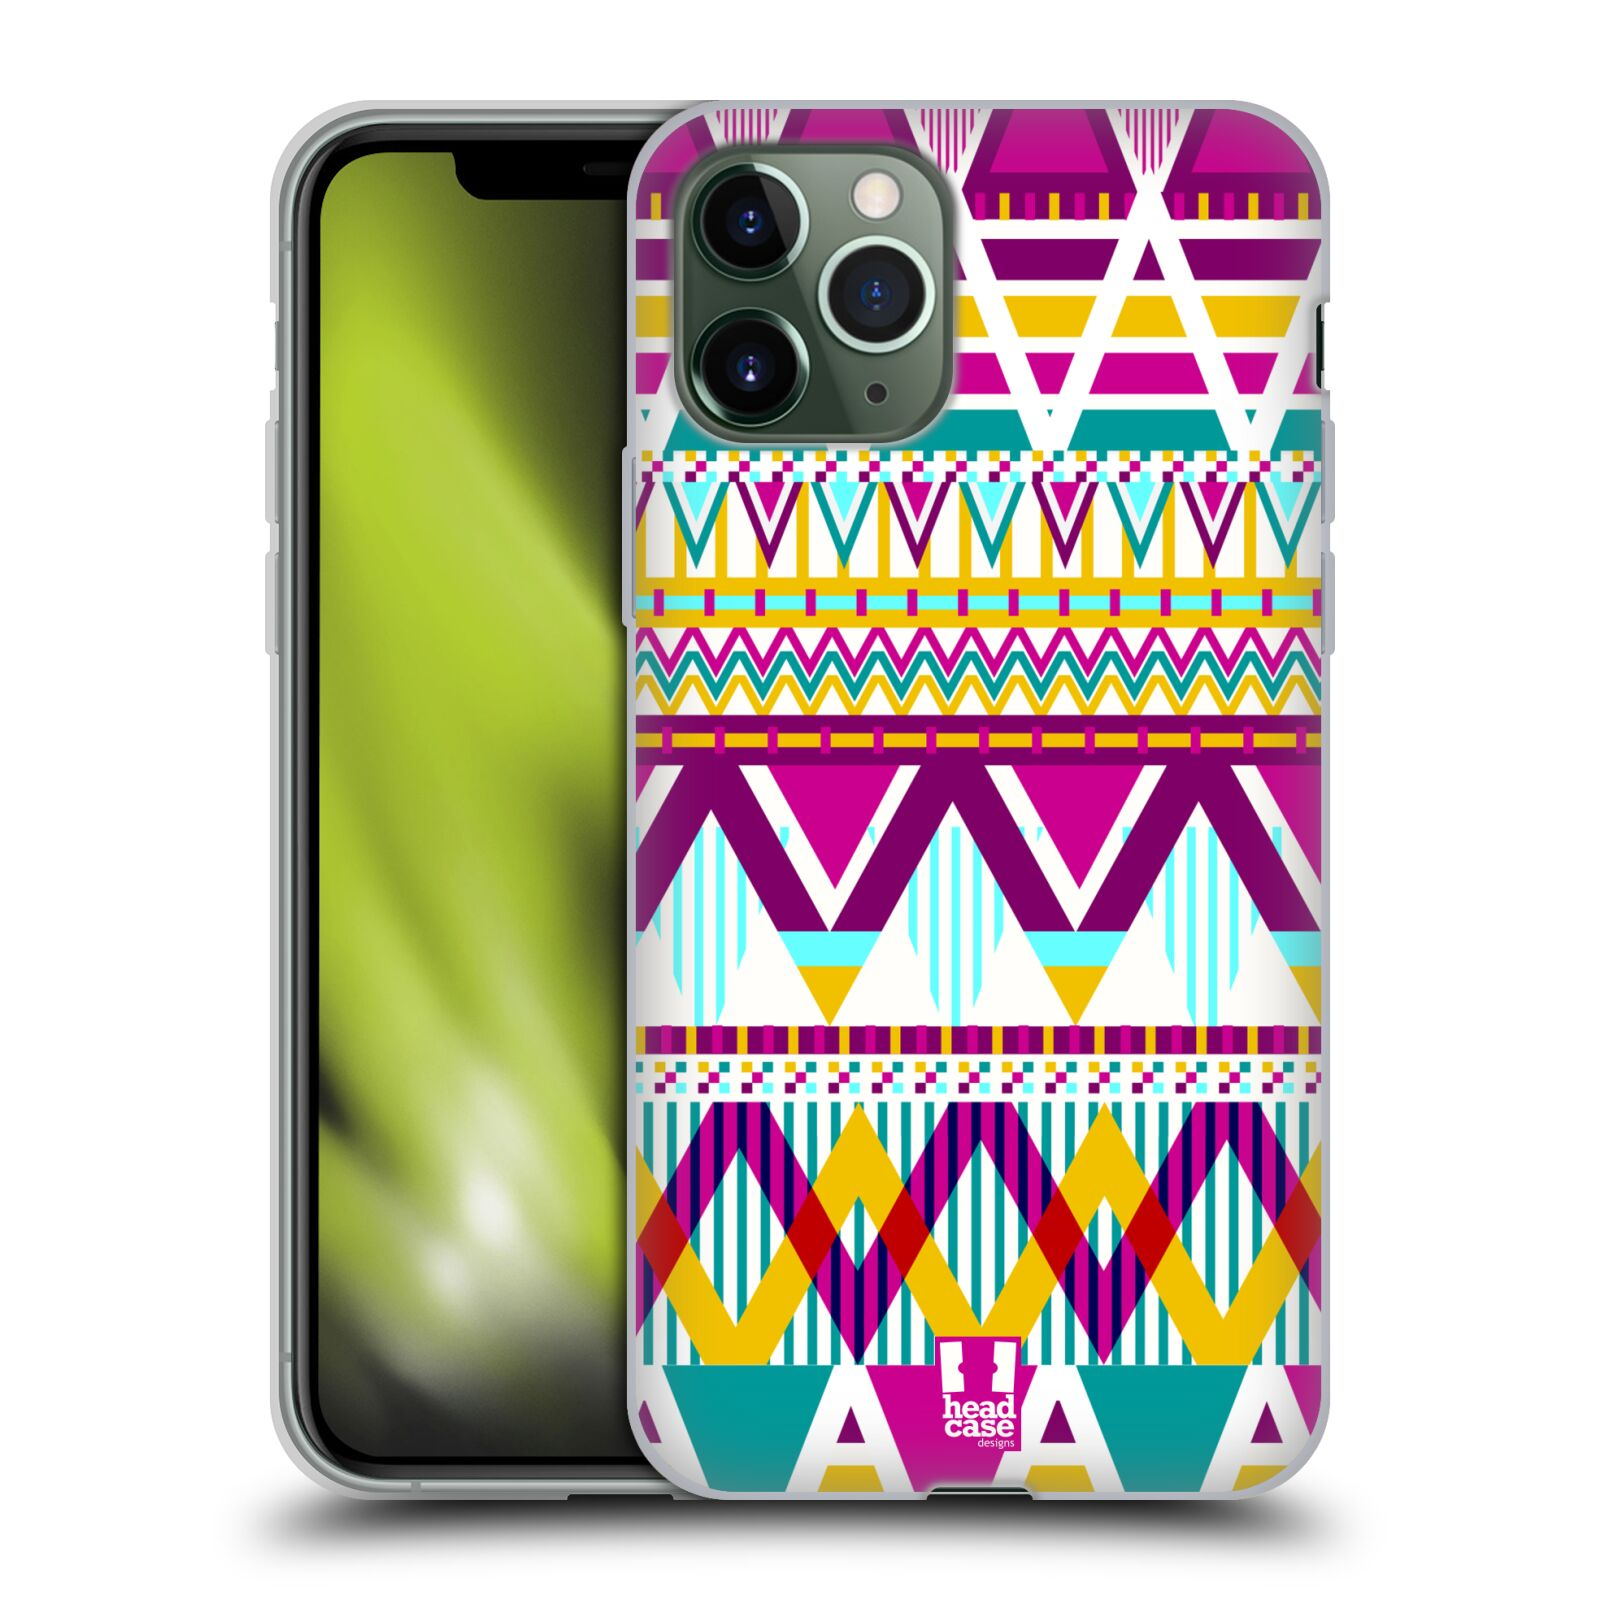 iphone 6s bape kryt | Silikonové pouzdro na mobil Apple iPhone 11 Pro - Head Case - AZTEC SUGARED